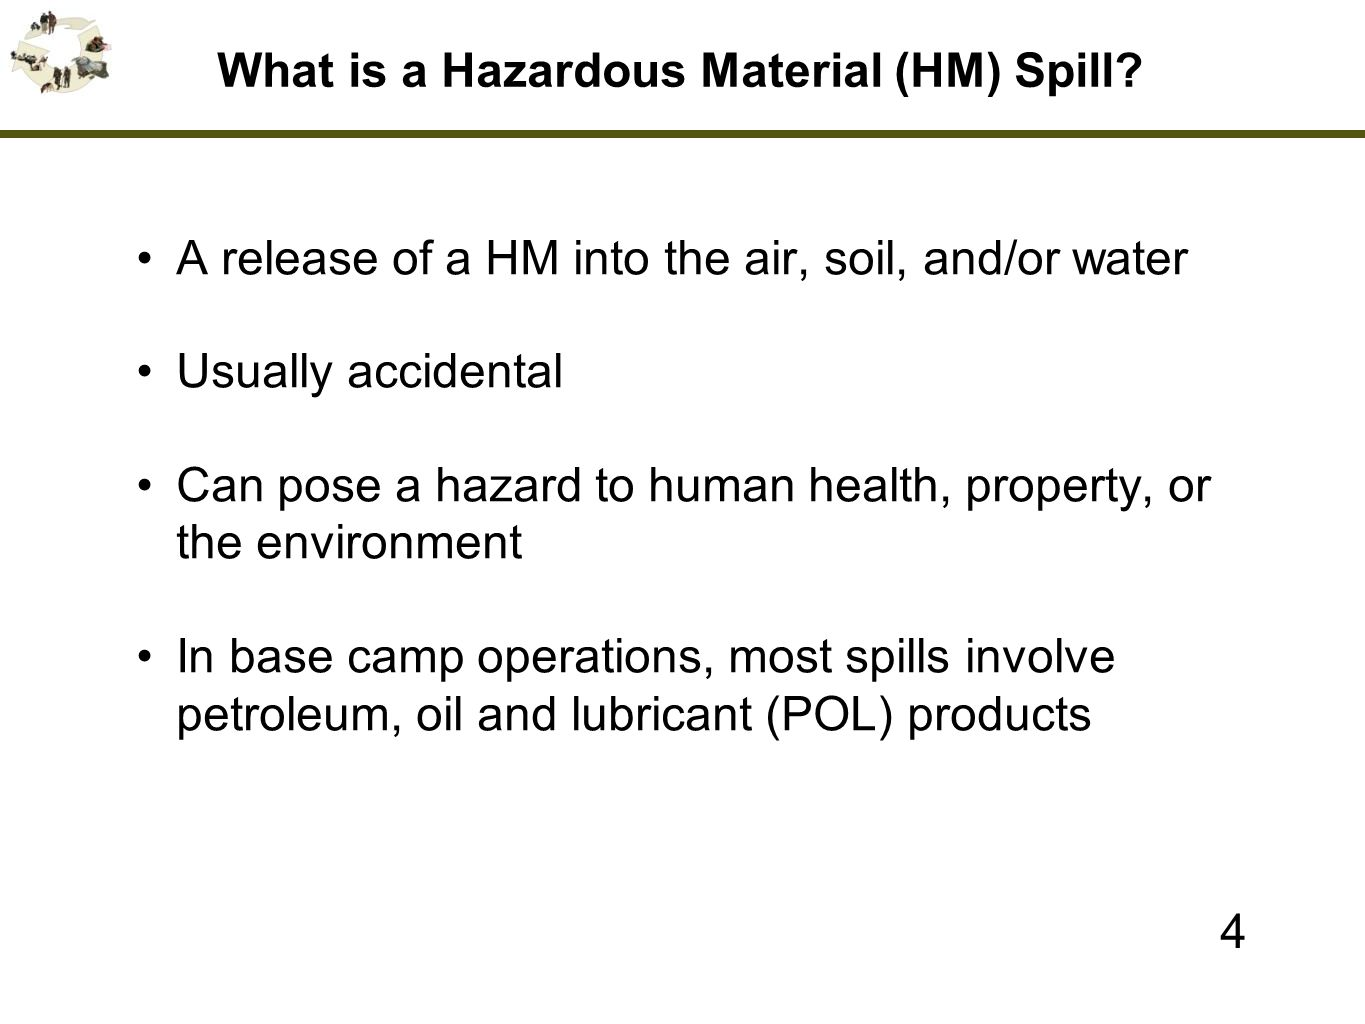 the hazardous impact of oil spills on the environment Oil spills affect birds in many ways, from damaging feathers and habitats to   because of their destructive impact on wildlife and the environment  oil affects  birds can raise awareness of just how hazardous any oil spill or.